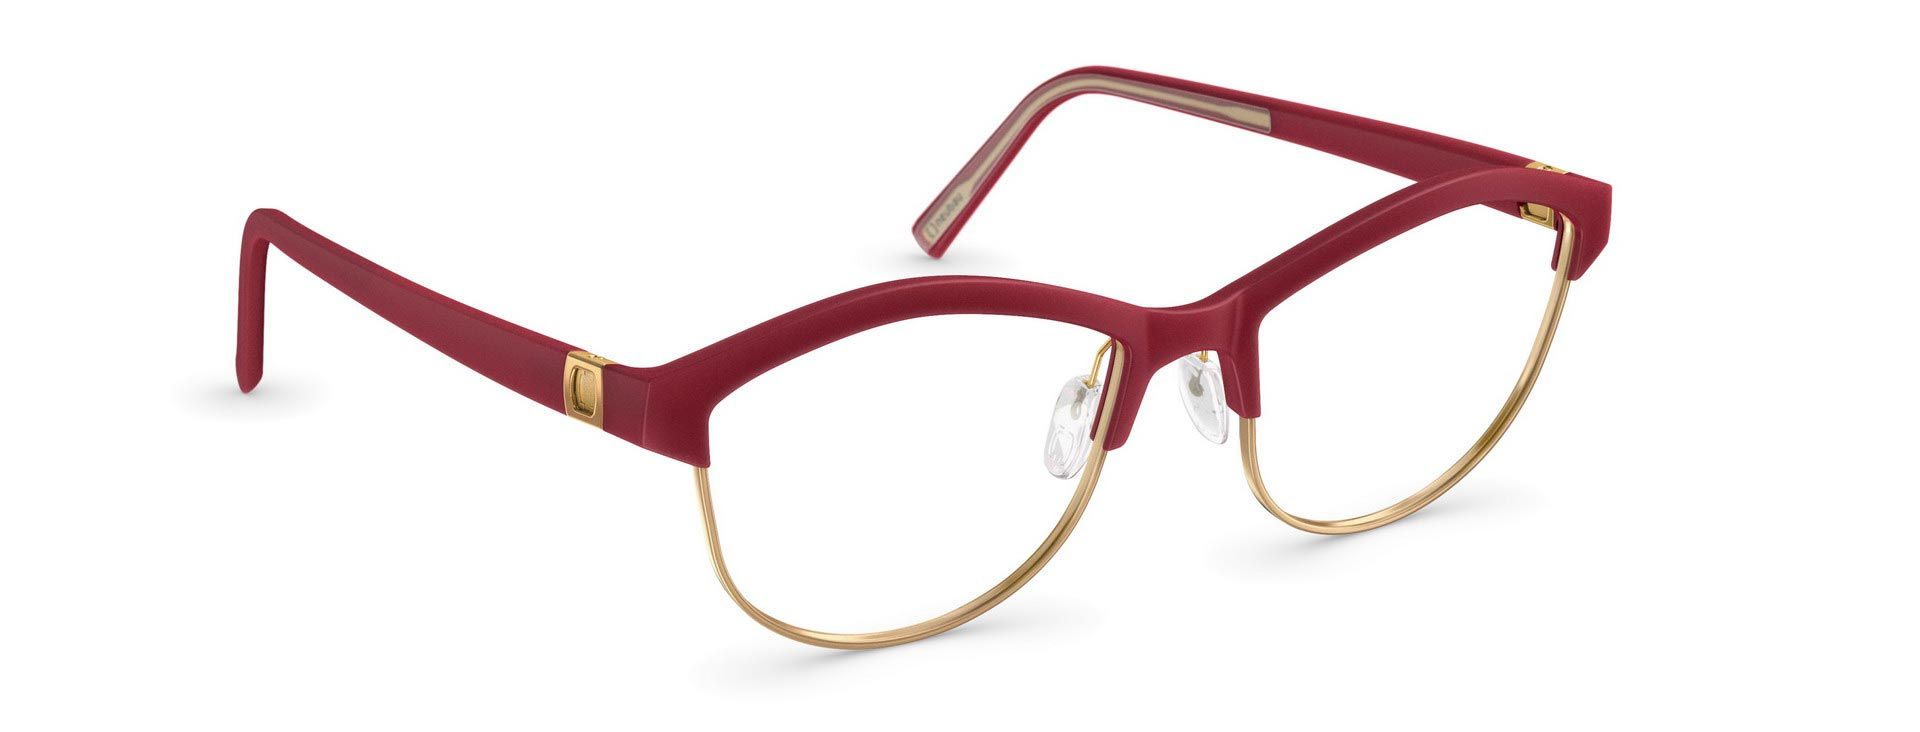 T072 Sonia 3030 ruby red matte gold Sid